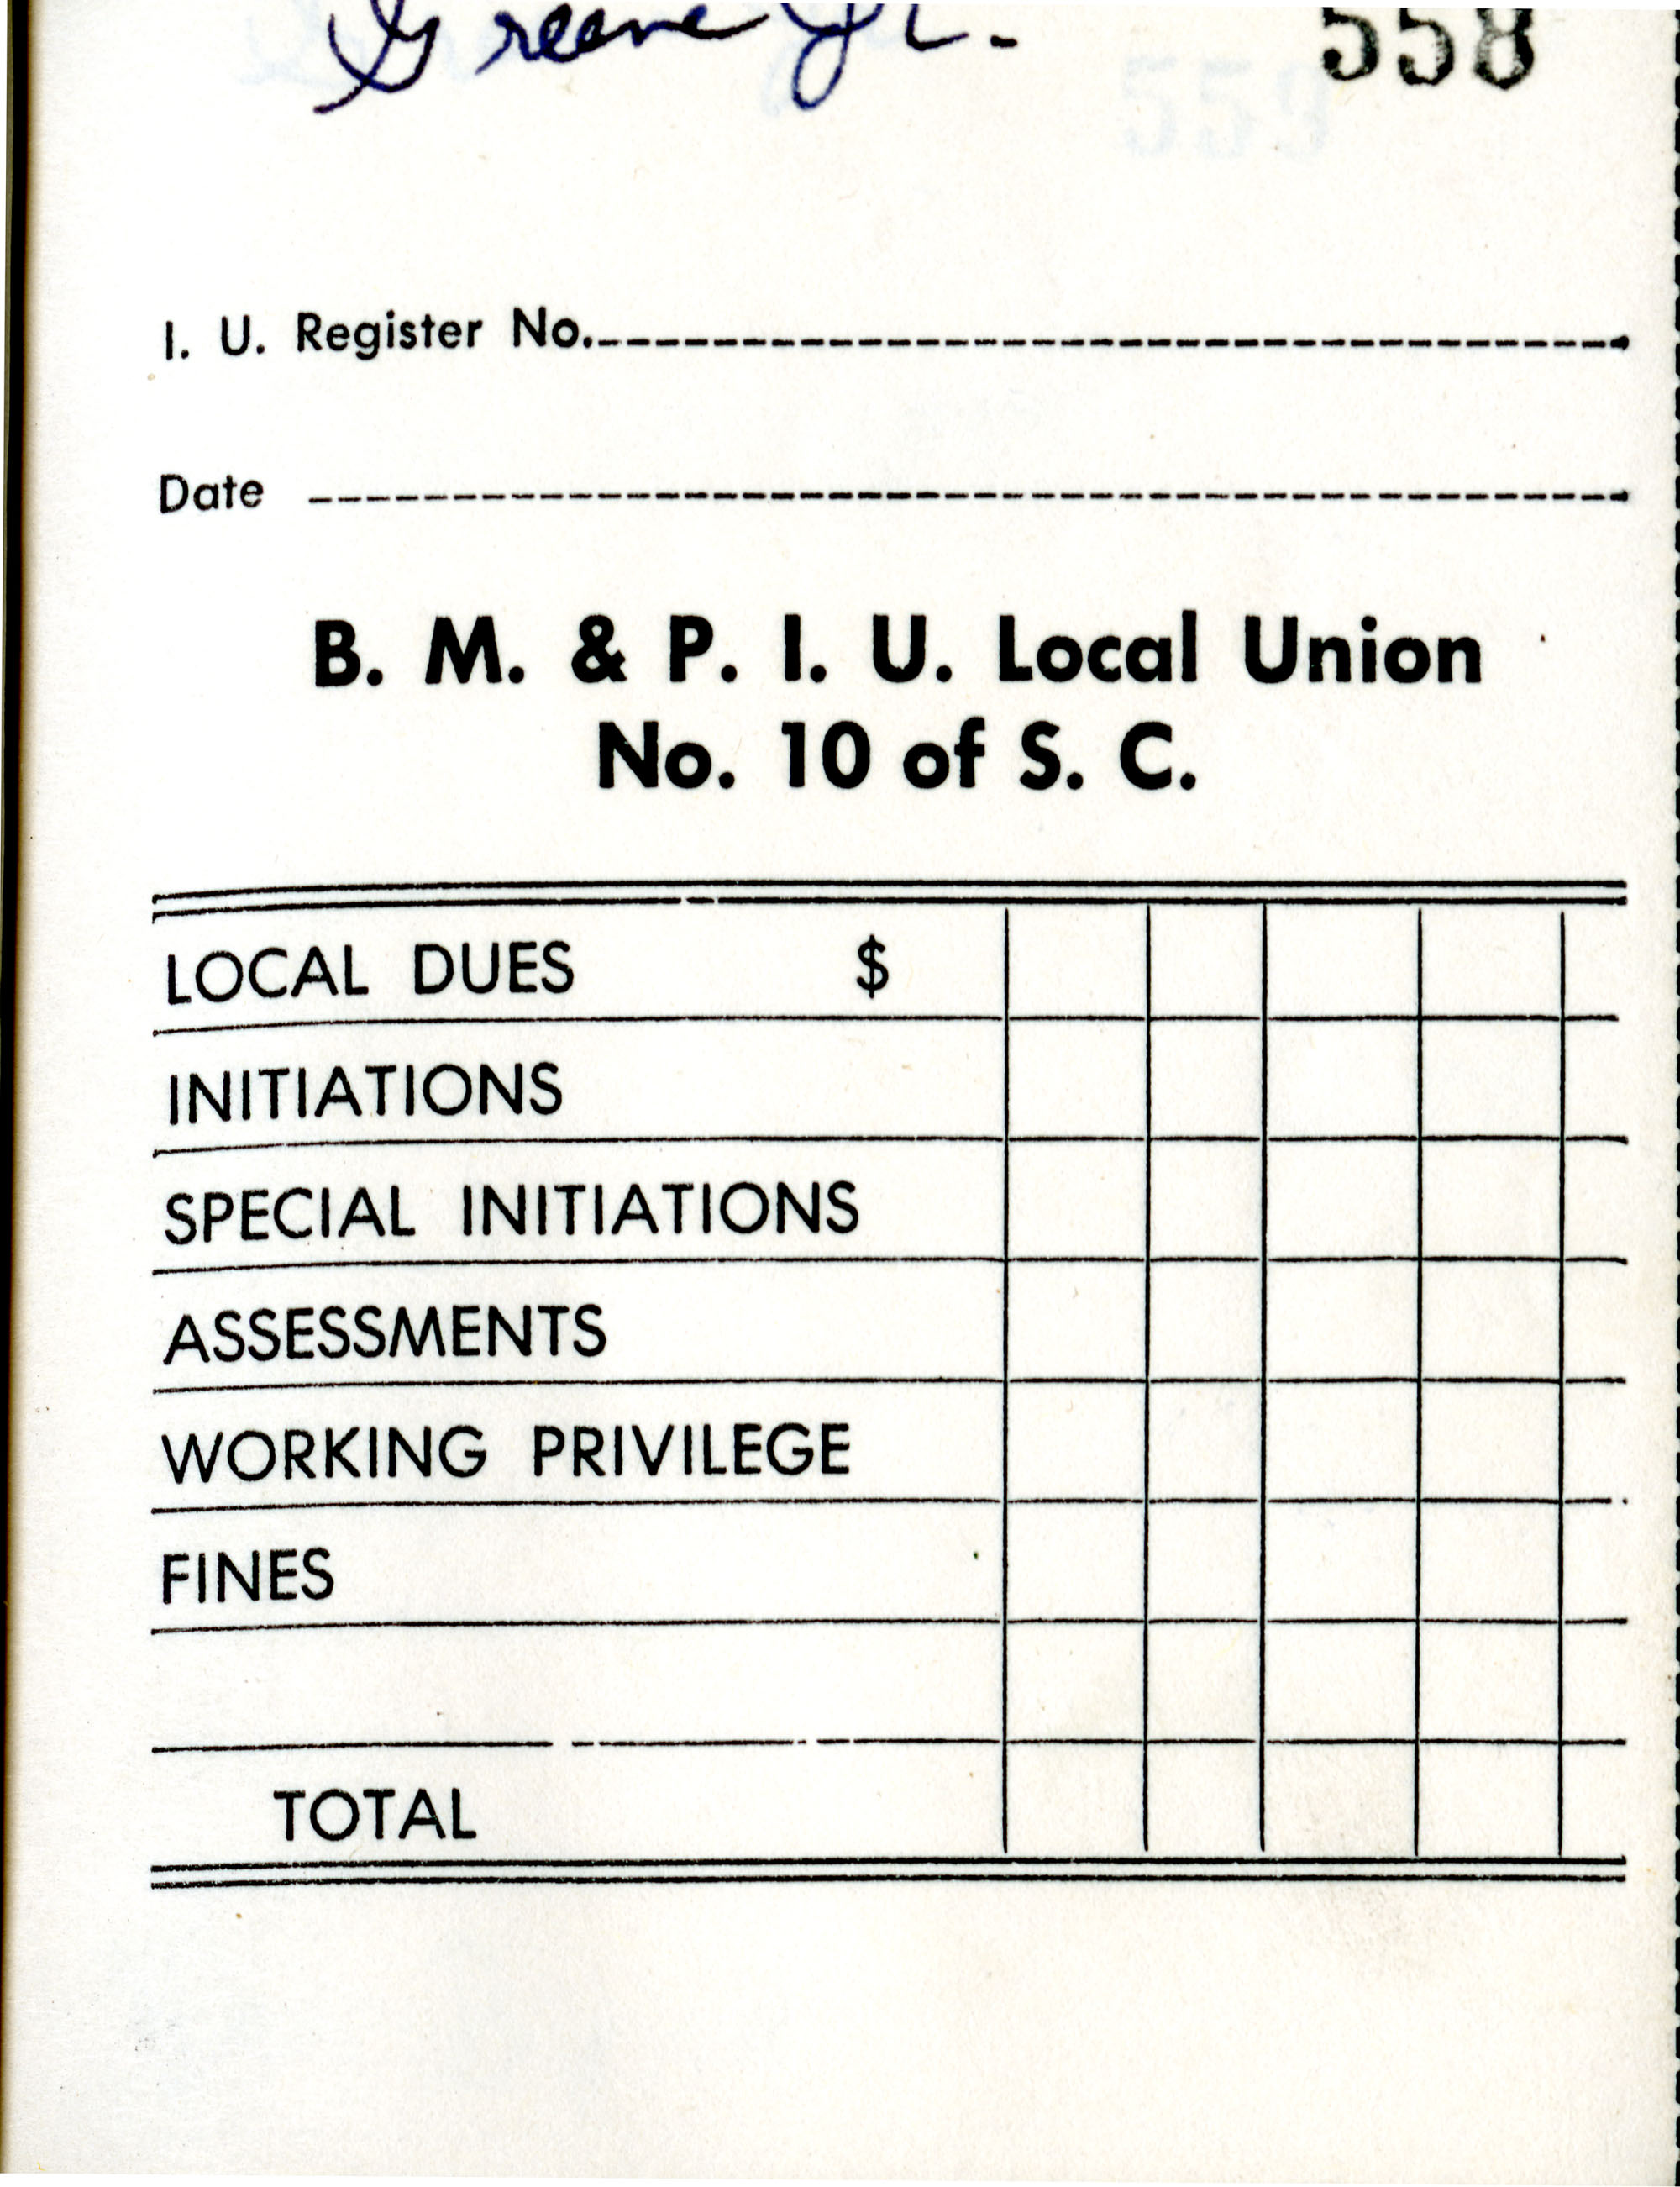 Receipt Book 6, Page 9